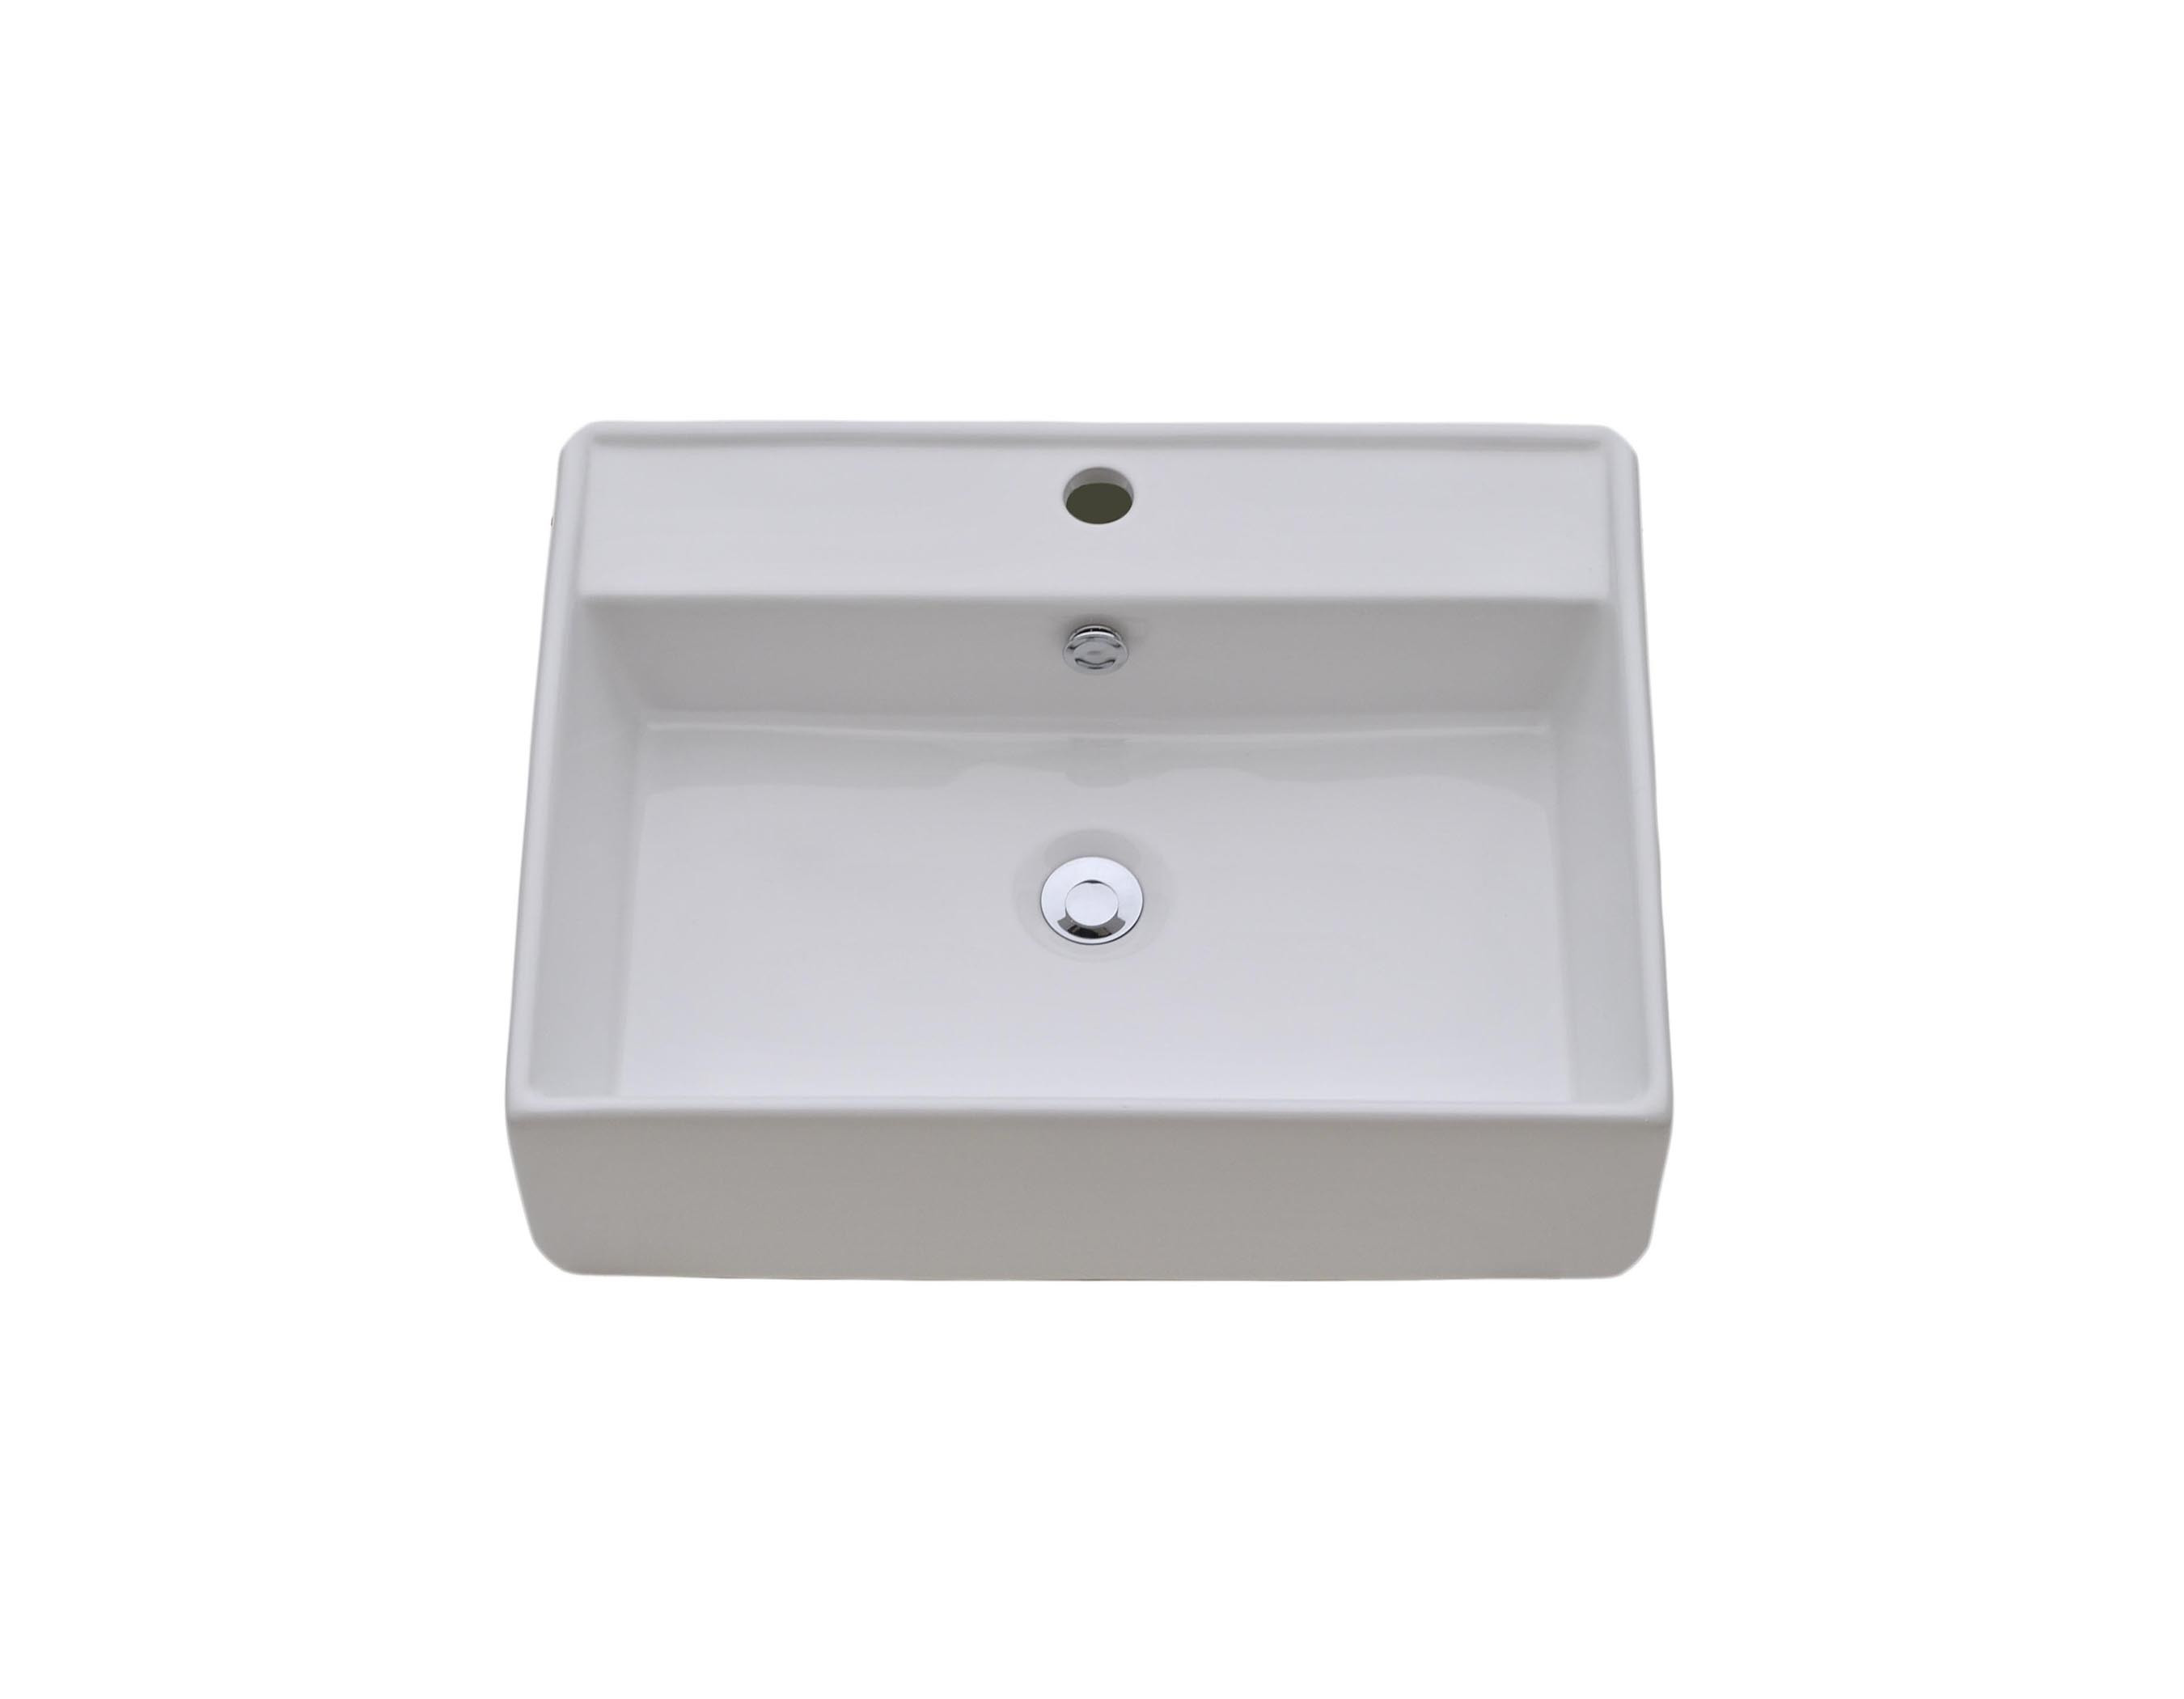 Best ideas about Top Mount Bathroom Sink . Save or Pin CVS 2318 Top Mount Bathroom Sink Now.